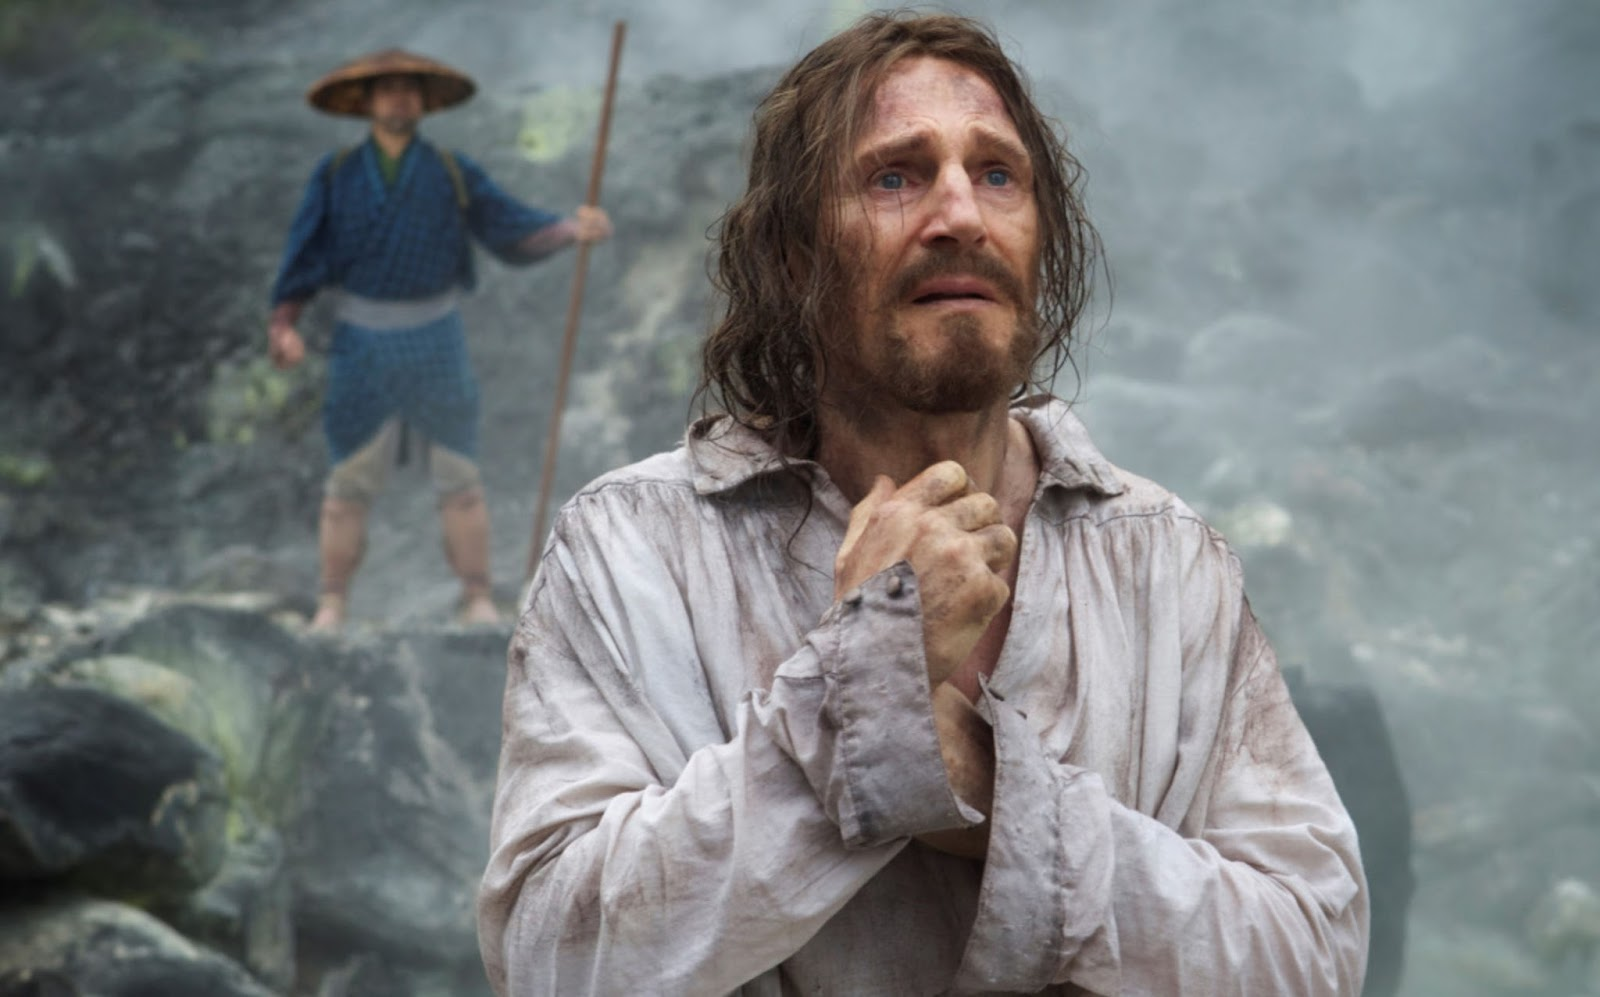 silence-movie-2016-liam-neeson-scorsese